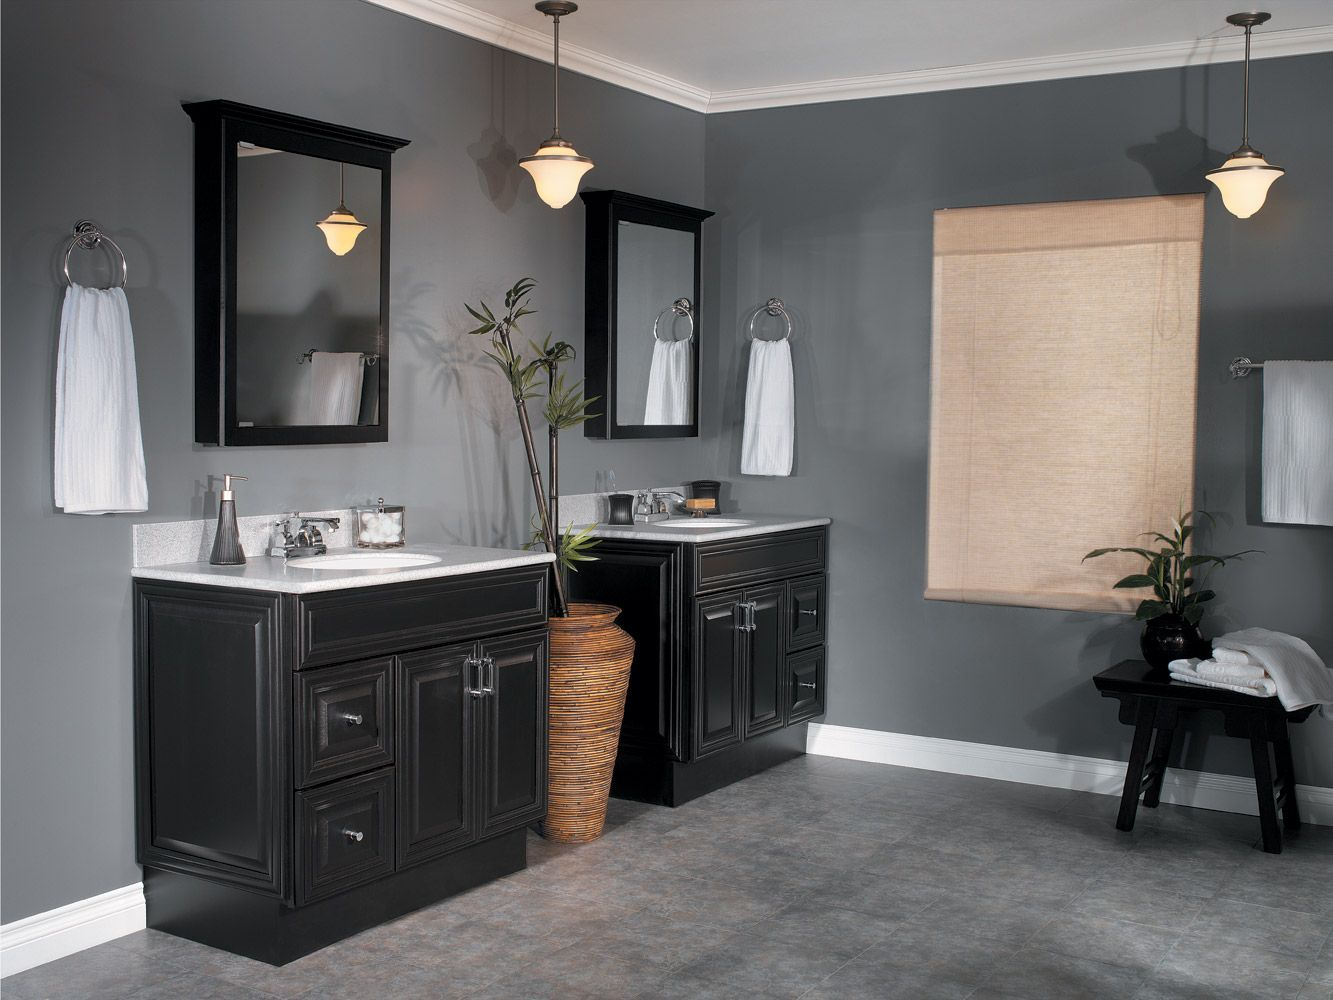 Black bathroom wall cabinet - Pictures Of Bathrooms With Black Cabinets Bathroom Design Center Masterbath